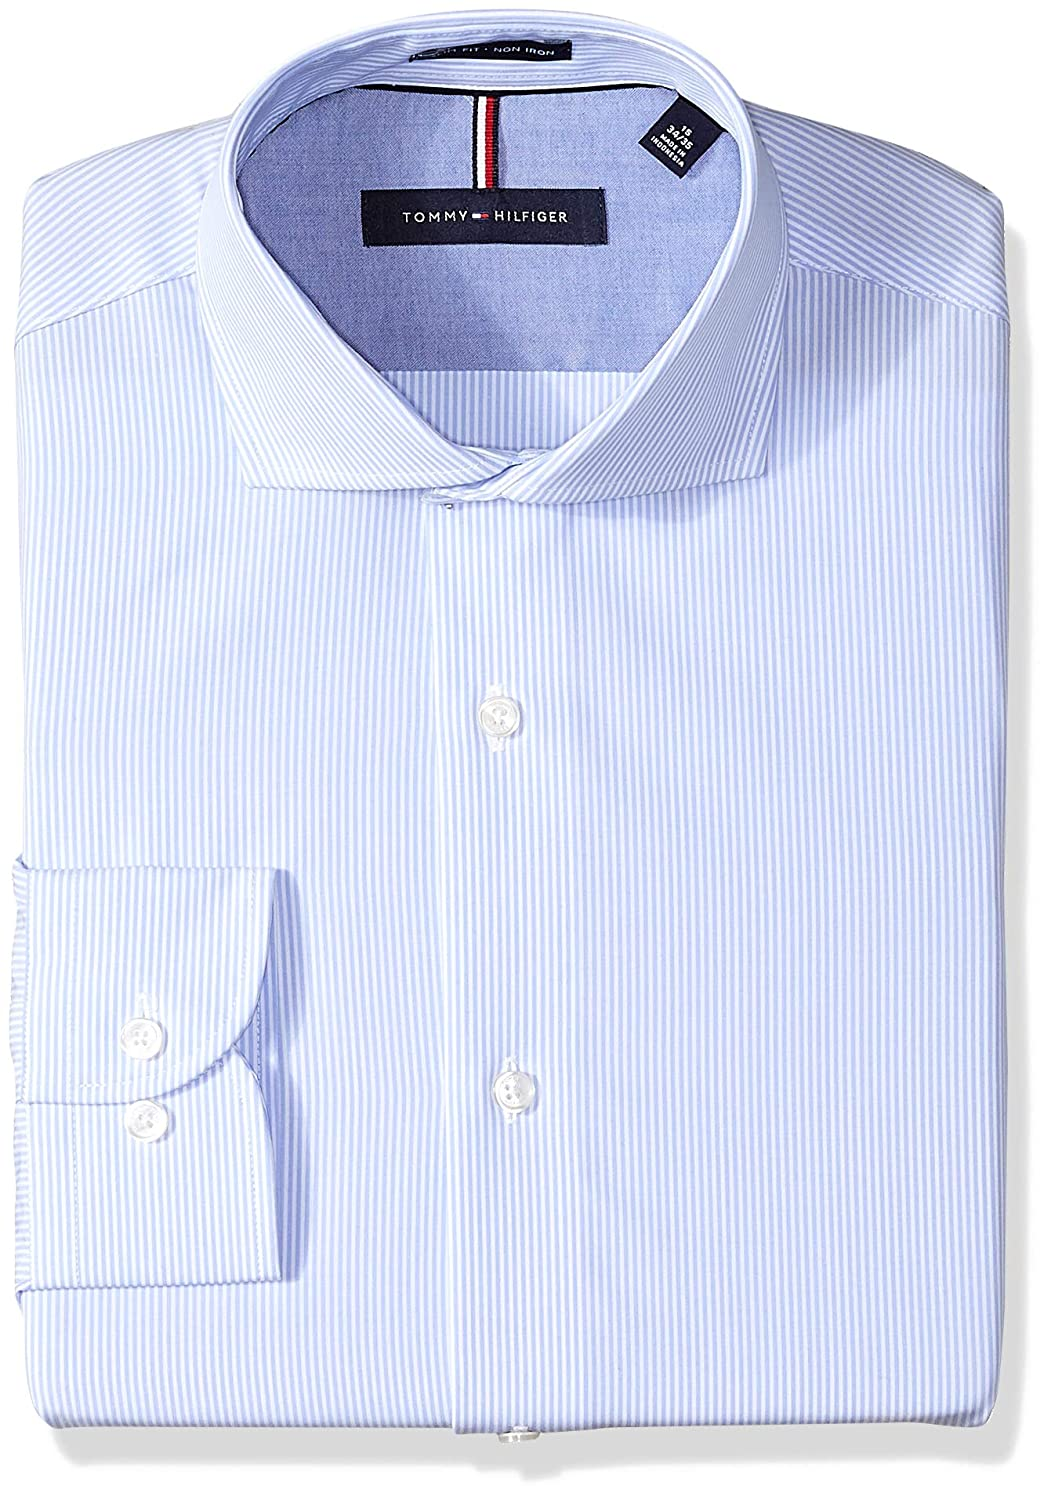 ebaa01b2 Spread collar, regular cuff, no pocket. Slim fit dress shirts have tapered  sleeves, higher arm holes, and a slimmer cut at the chest and waist